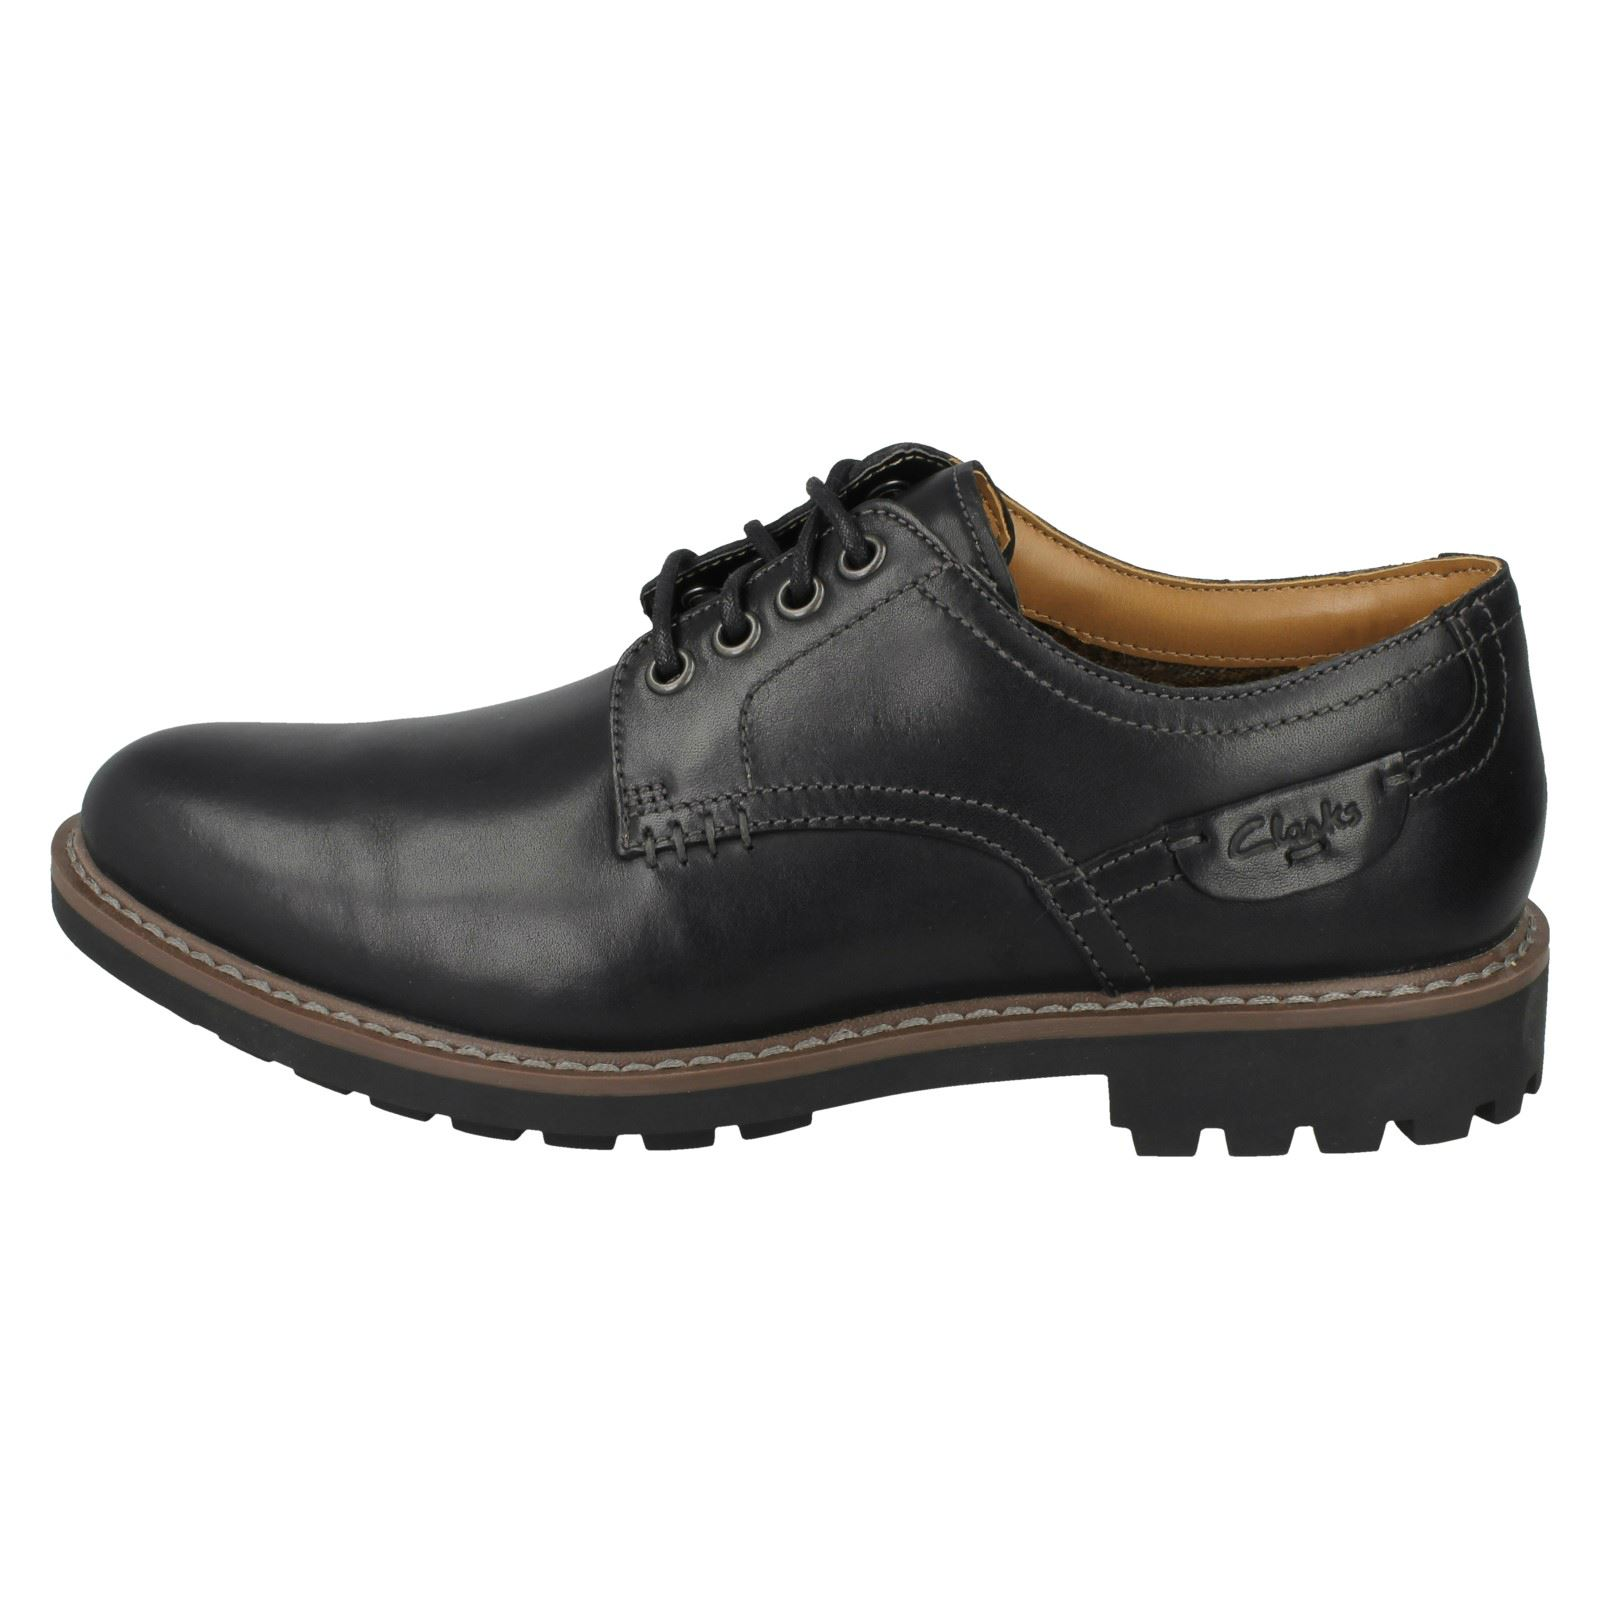 CLARKS MENS MAXIM EDGE NAVY LEATHER LACE UP SHOES SIZE 8,9,10,12 G